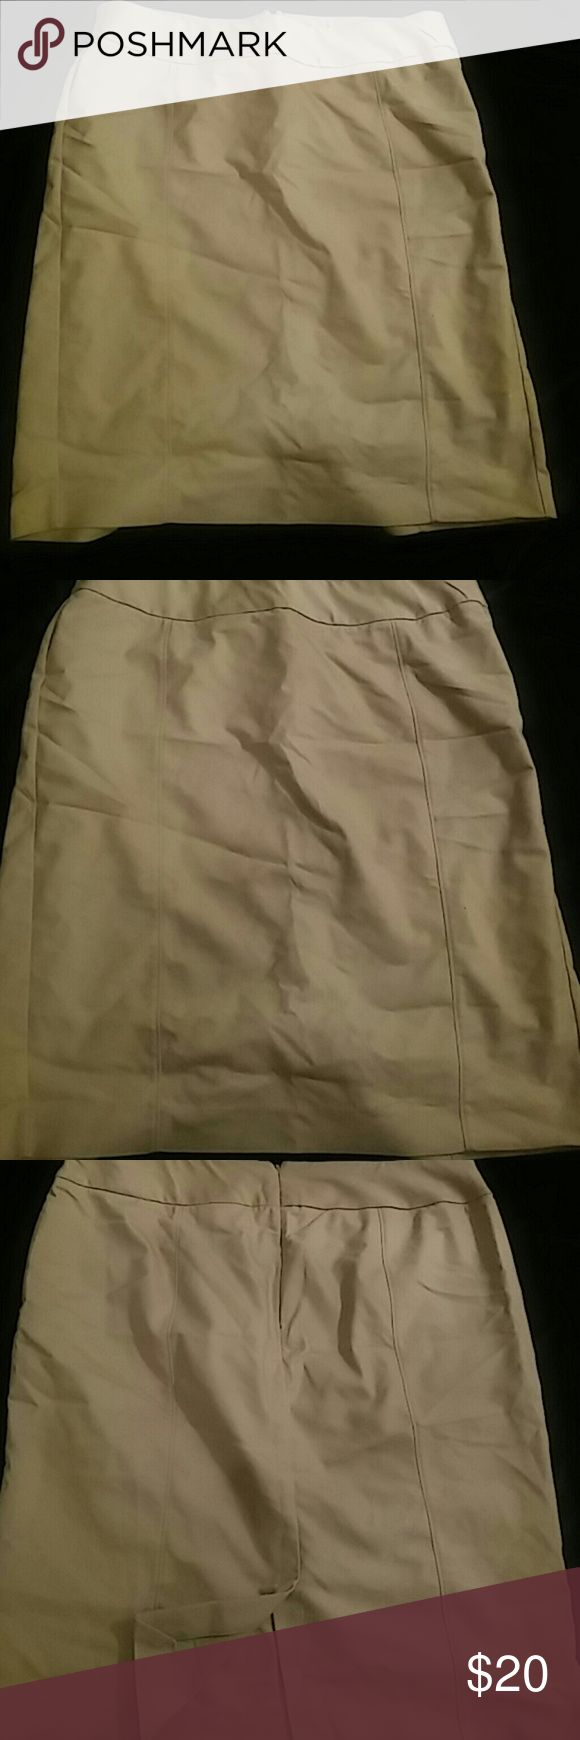 Lane Bryant Khaki Skirt Khaki pencil skirt with zipper closure. Great condition! Approximately 25 inches in length. Lane Bryant Skirts Pencil